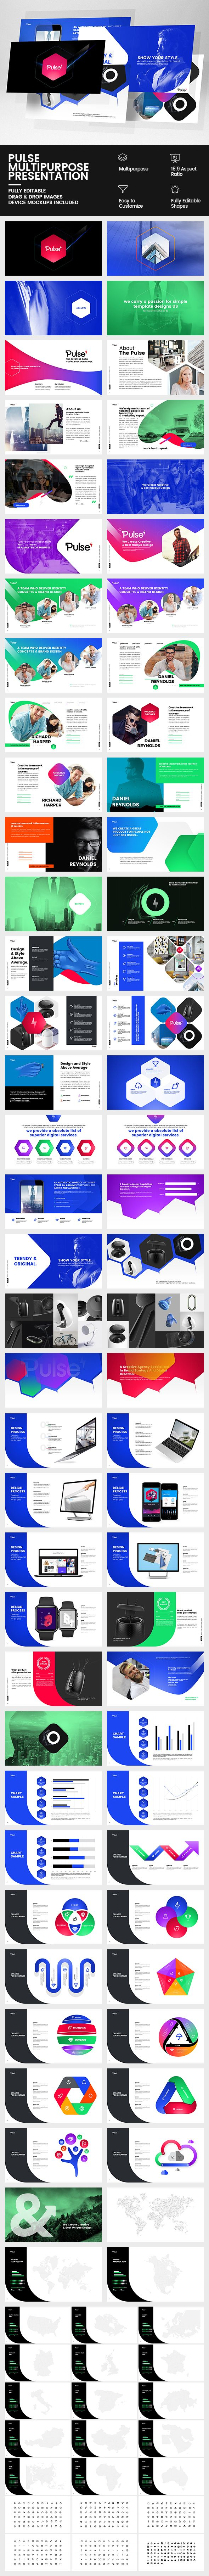 Pulse Multipurpose Presentation — Powerpoint PPT #pitch deck #mockup • Available here ➝ https://graphicriver.net/item/pulse-multipurpose-presentation/20580861?ref=pxcr